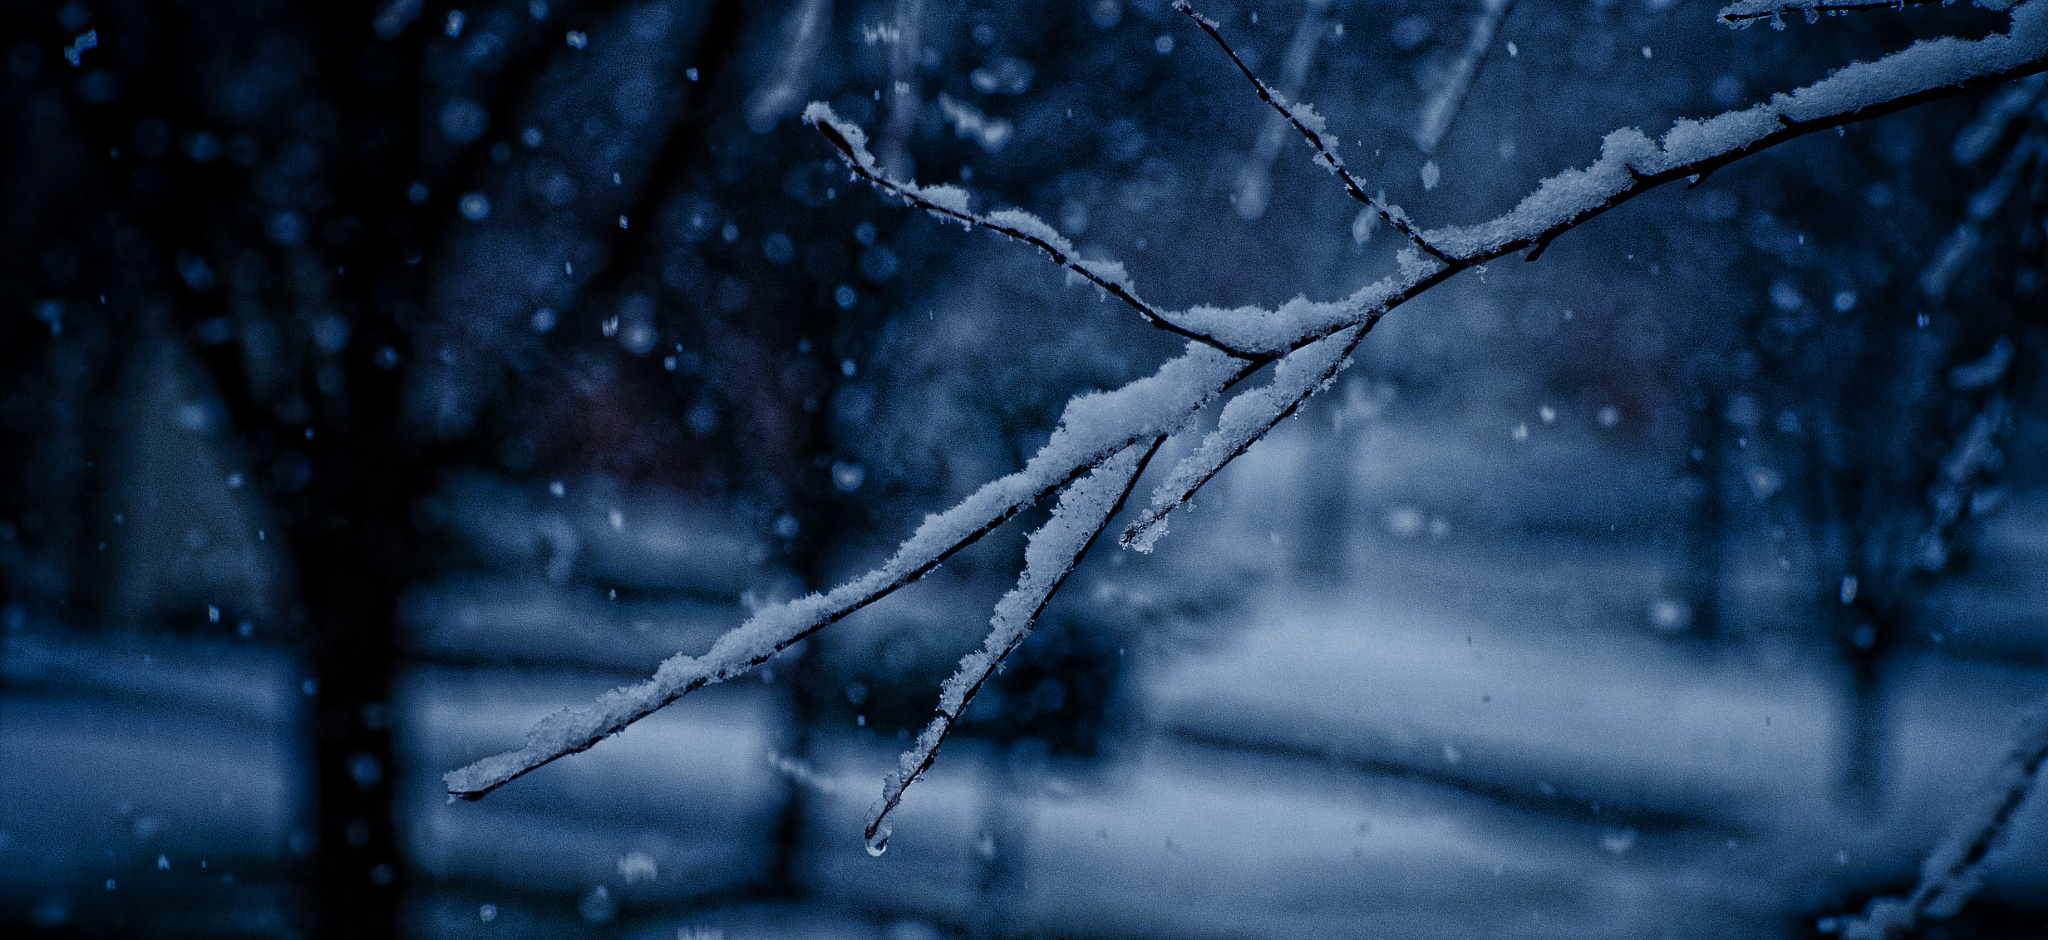 Snow on Birch 5 by JohnEllingson